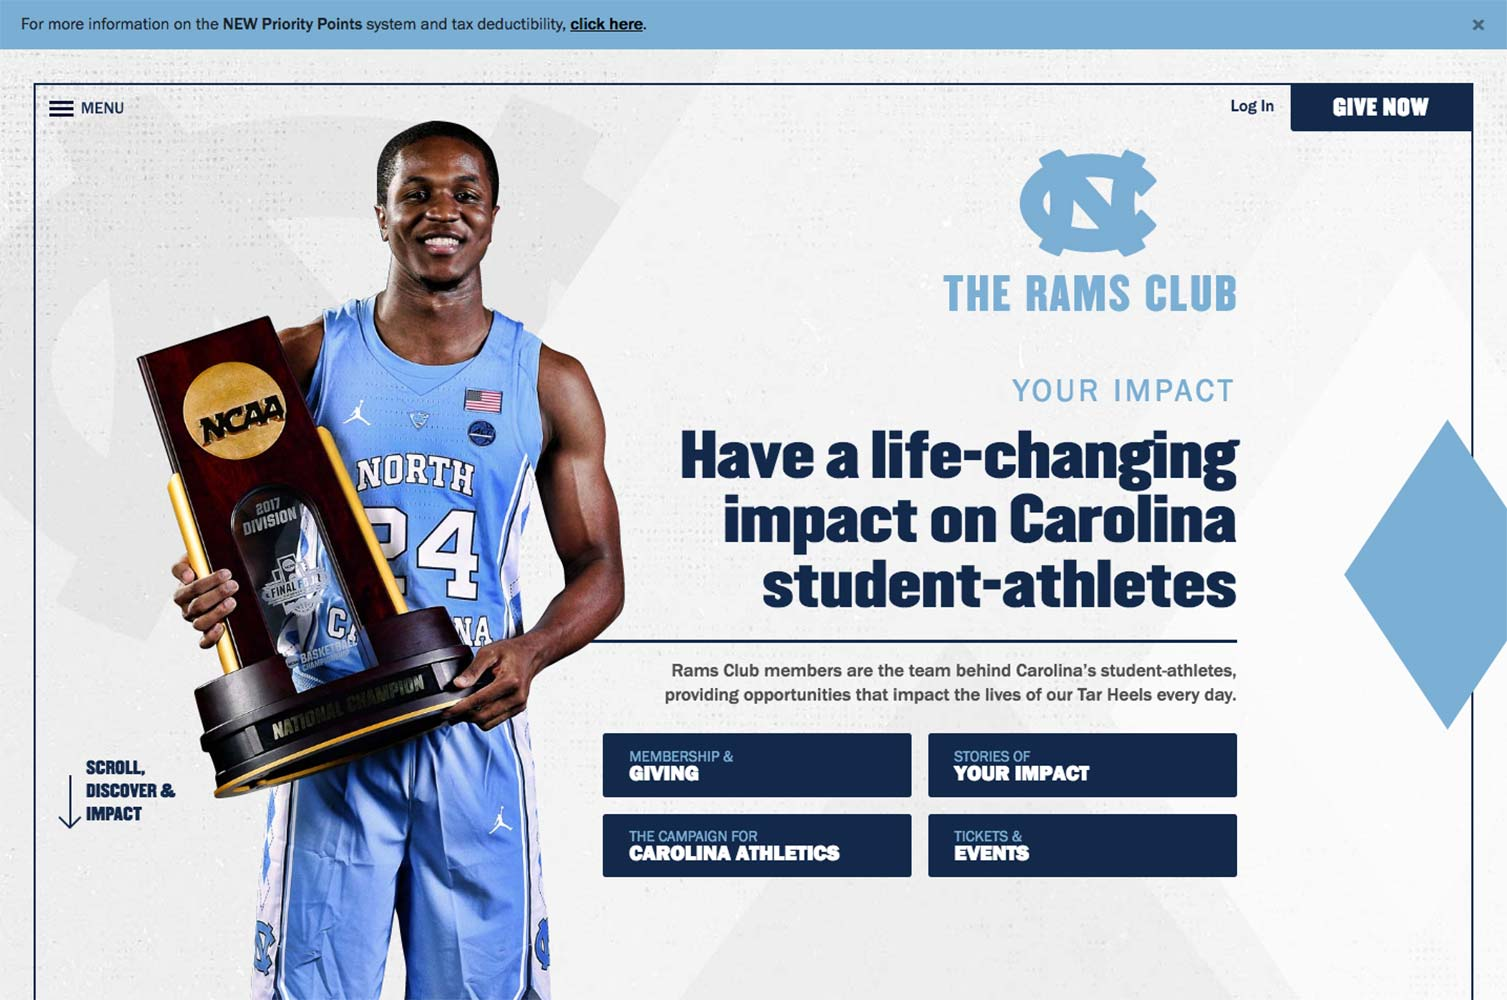 Rams Club Website  | <a href='https://ramsclub.com/' target='_blank'>Visit Site <i class='nc-icon-glyph arrows-1_share-91'></i></a><br><span>University of North Carolina</span>